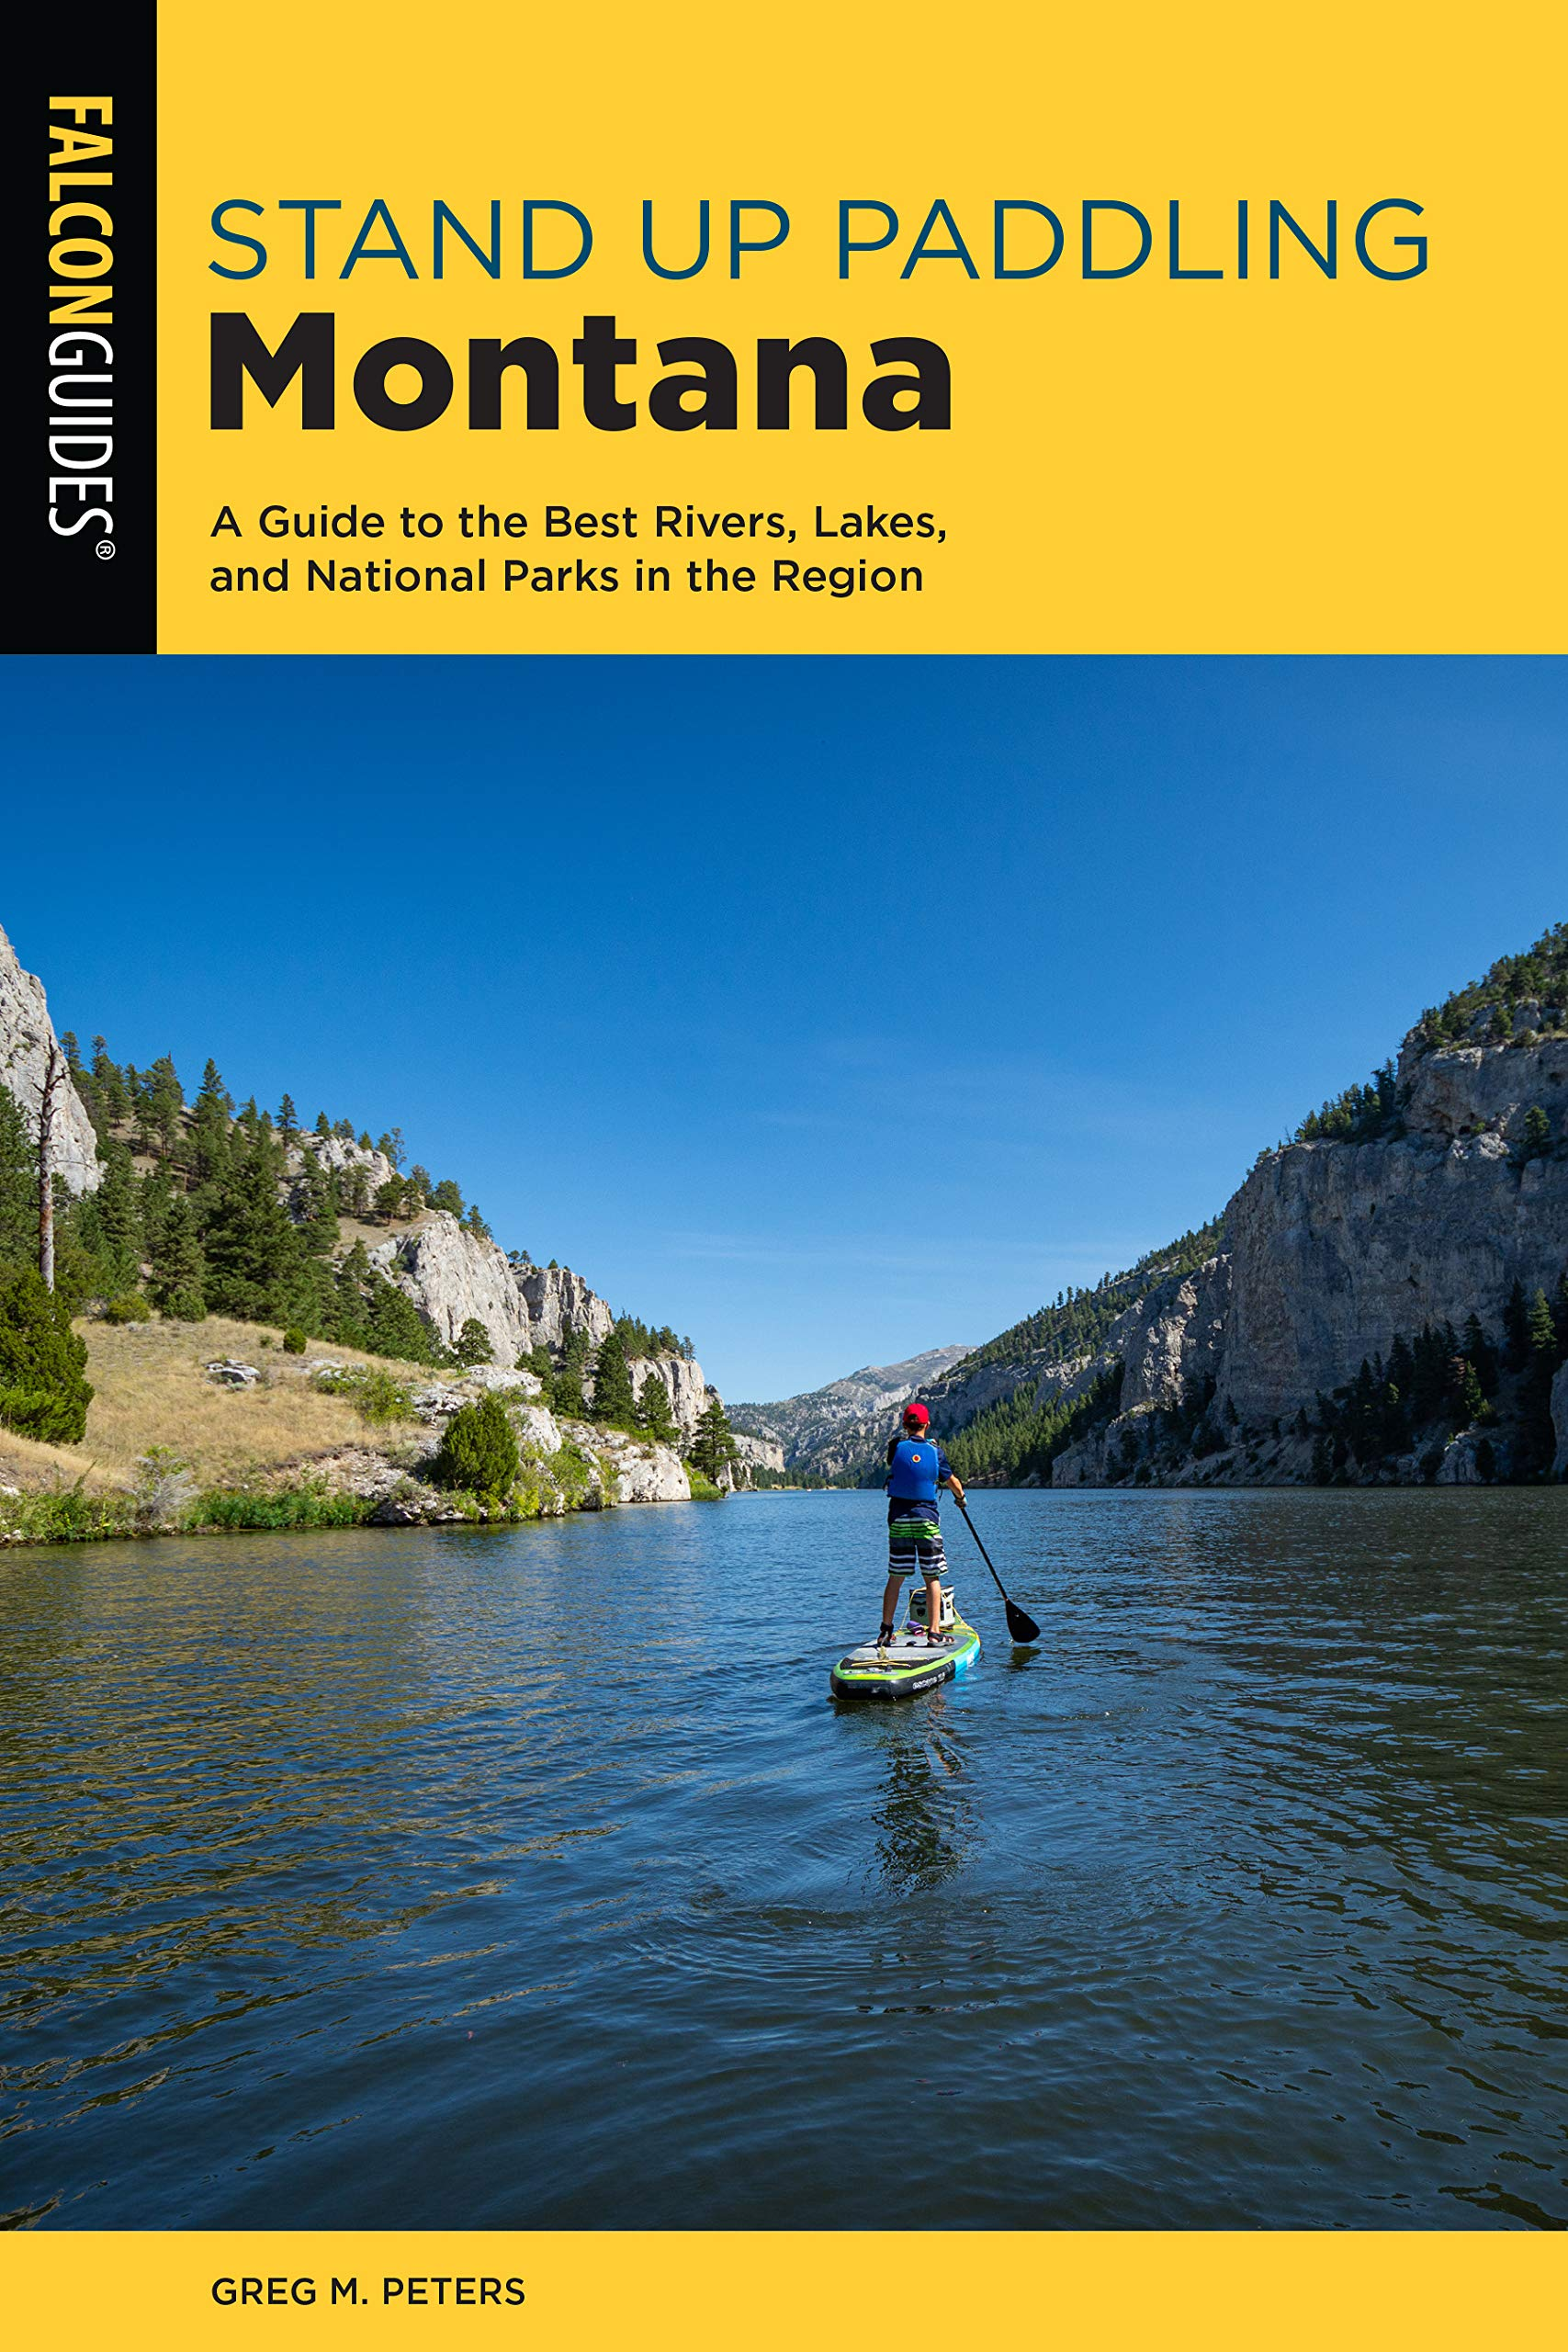 Best Stand Up 2021 Standup Paddling Montana: A Guide to the Best Rivers, Lakes, and